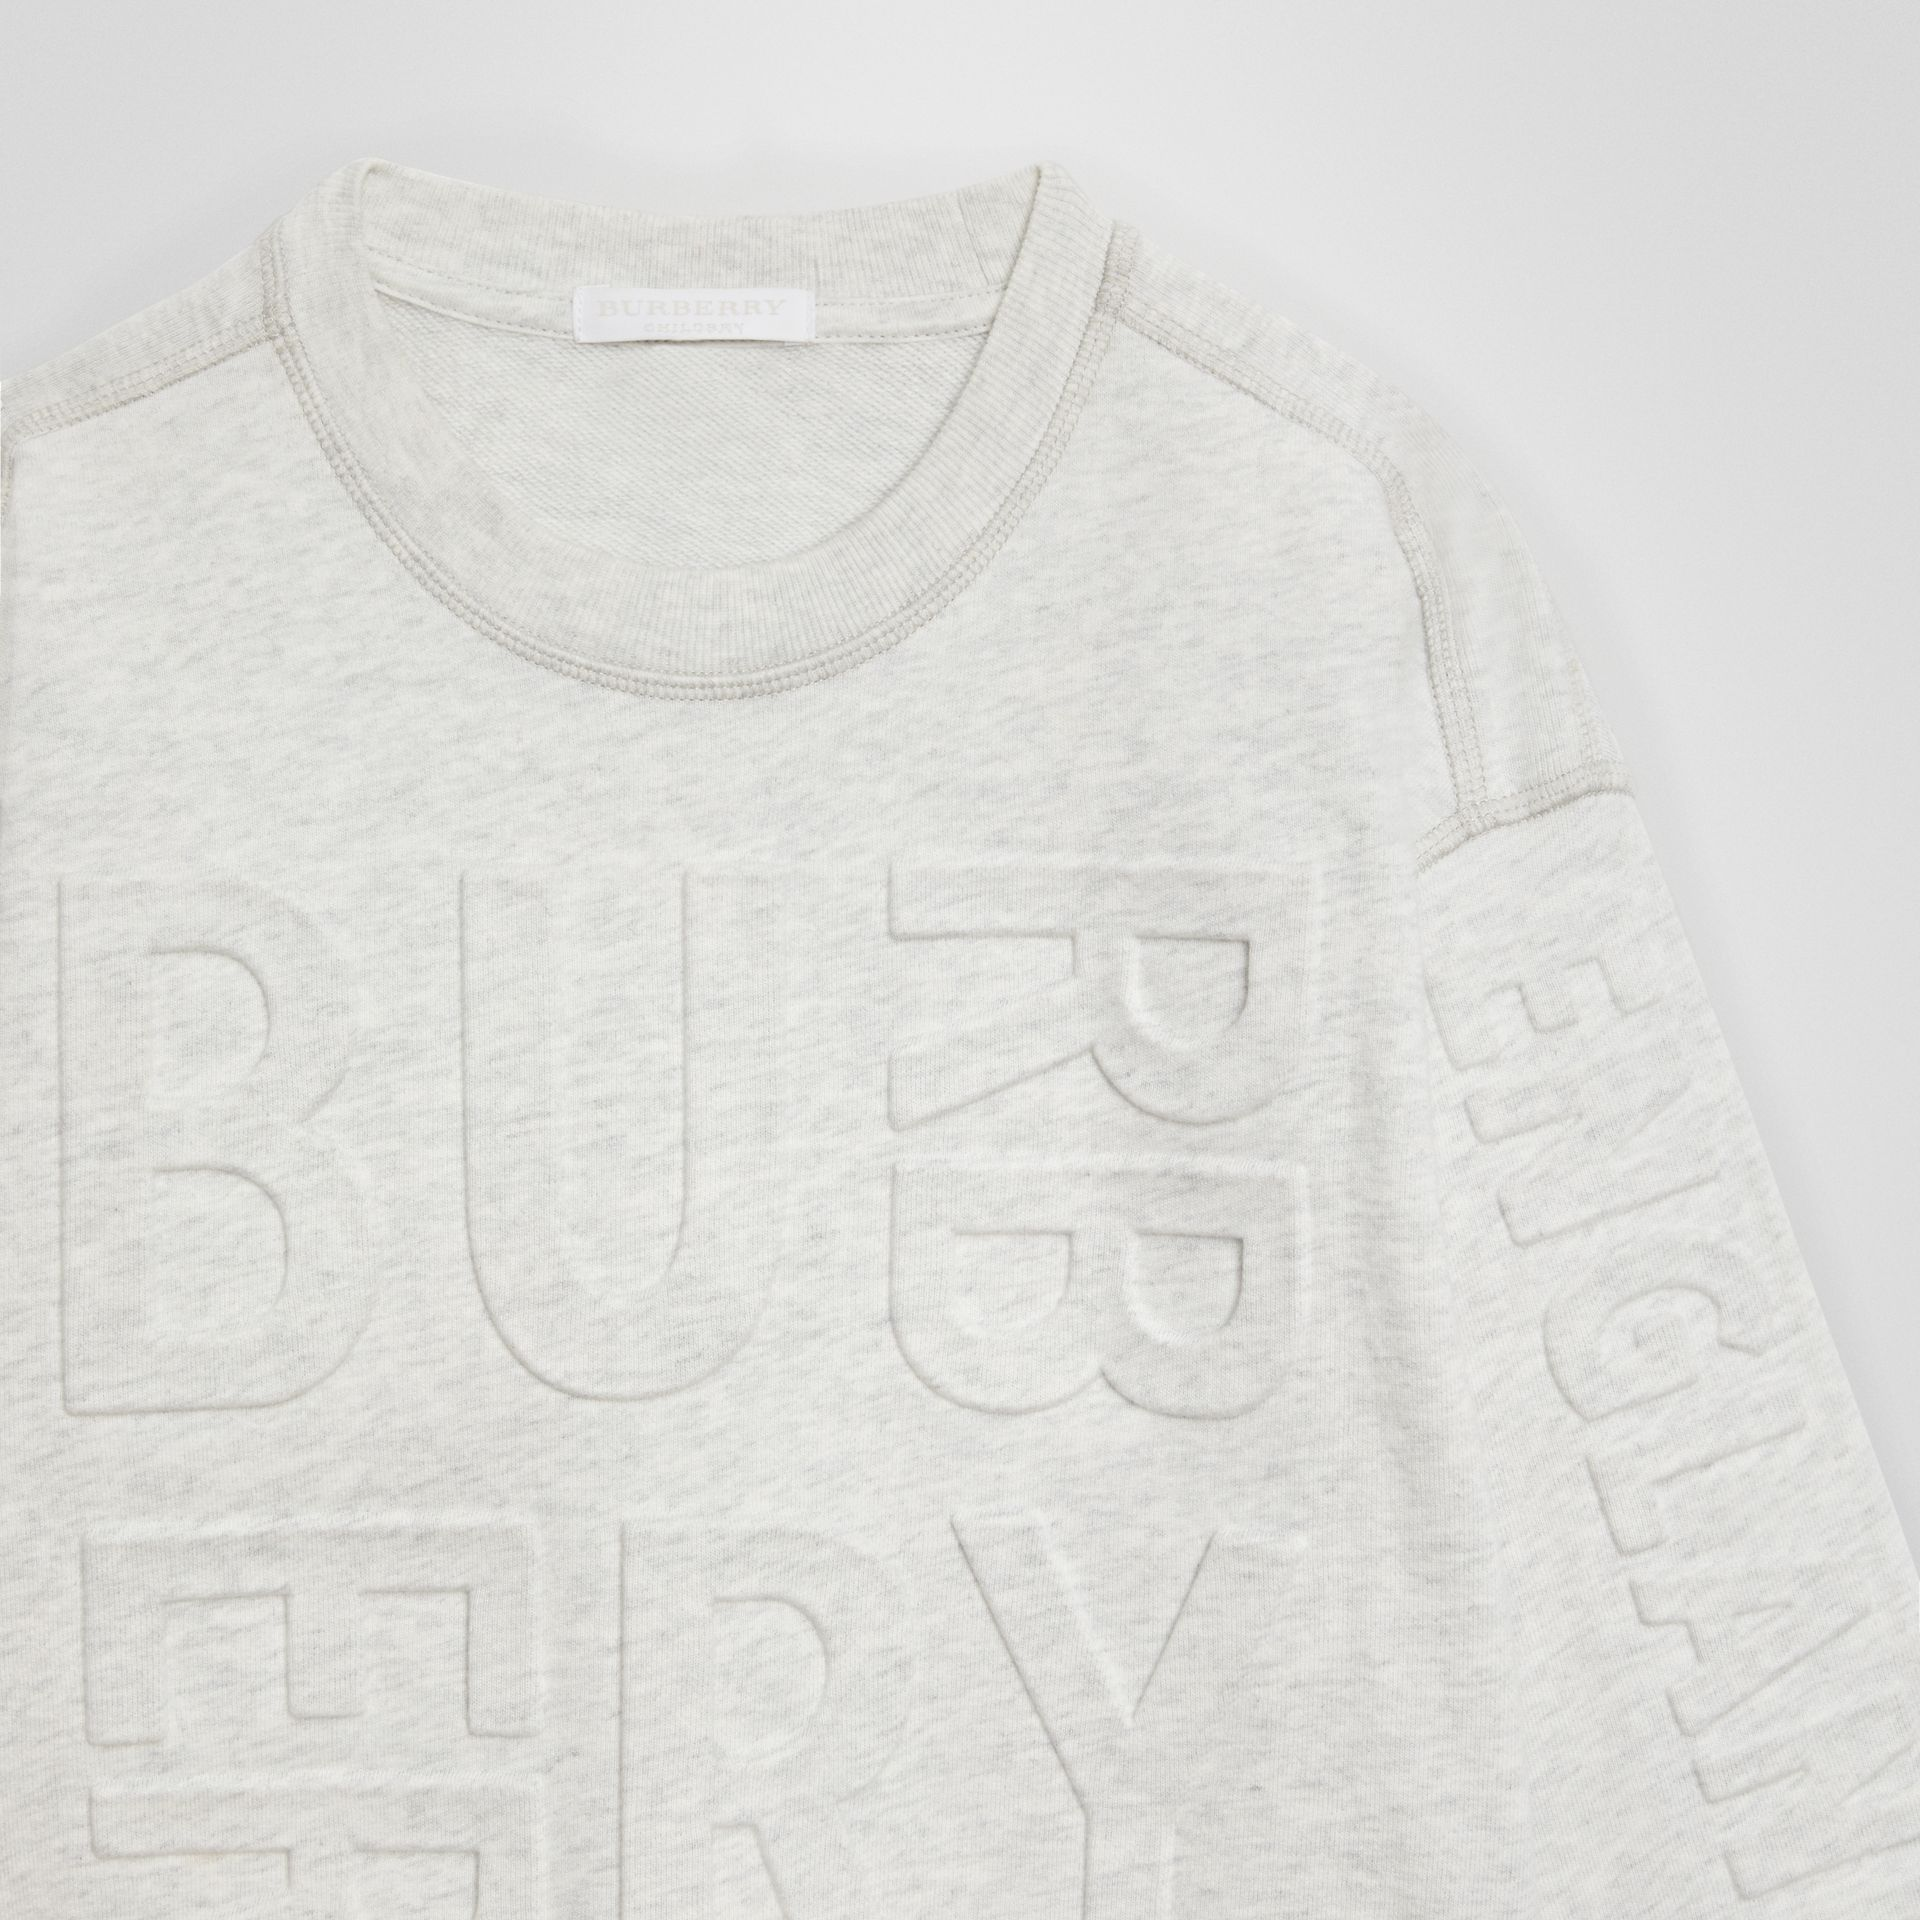 Sweat-shirt en coton avec logo estampé (Camaïeu De Blancs) | Burberry - photo de la galerie 4